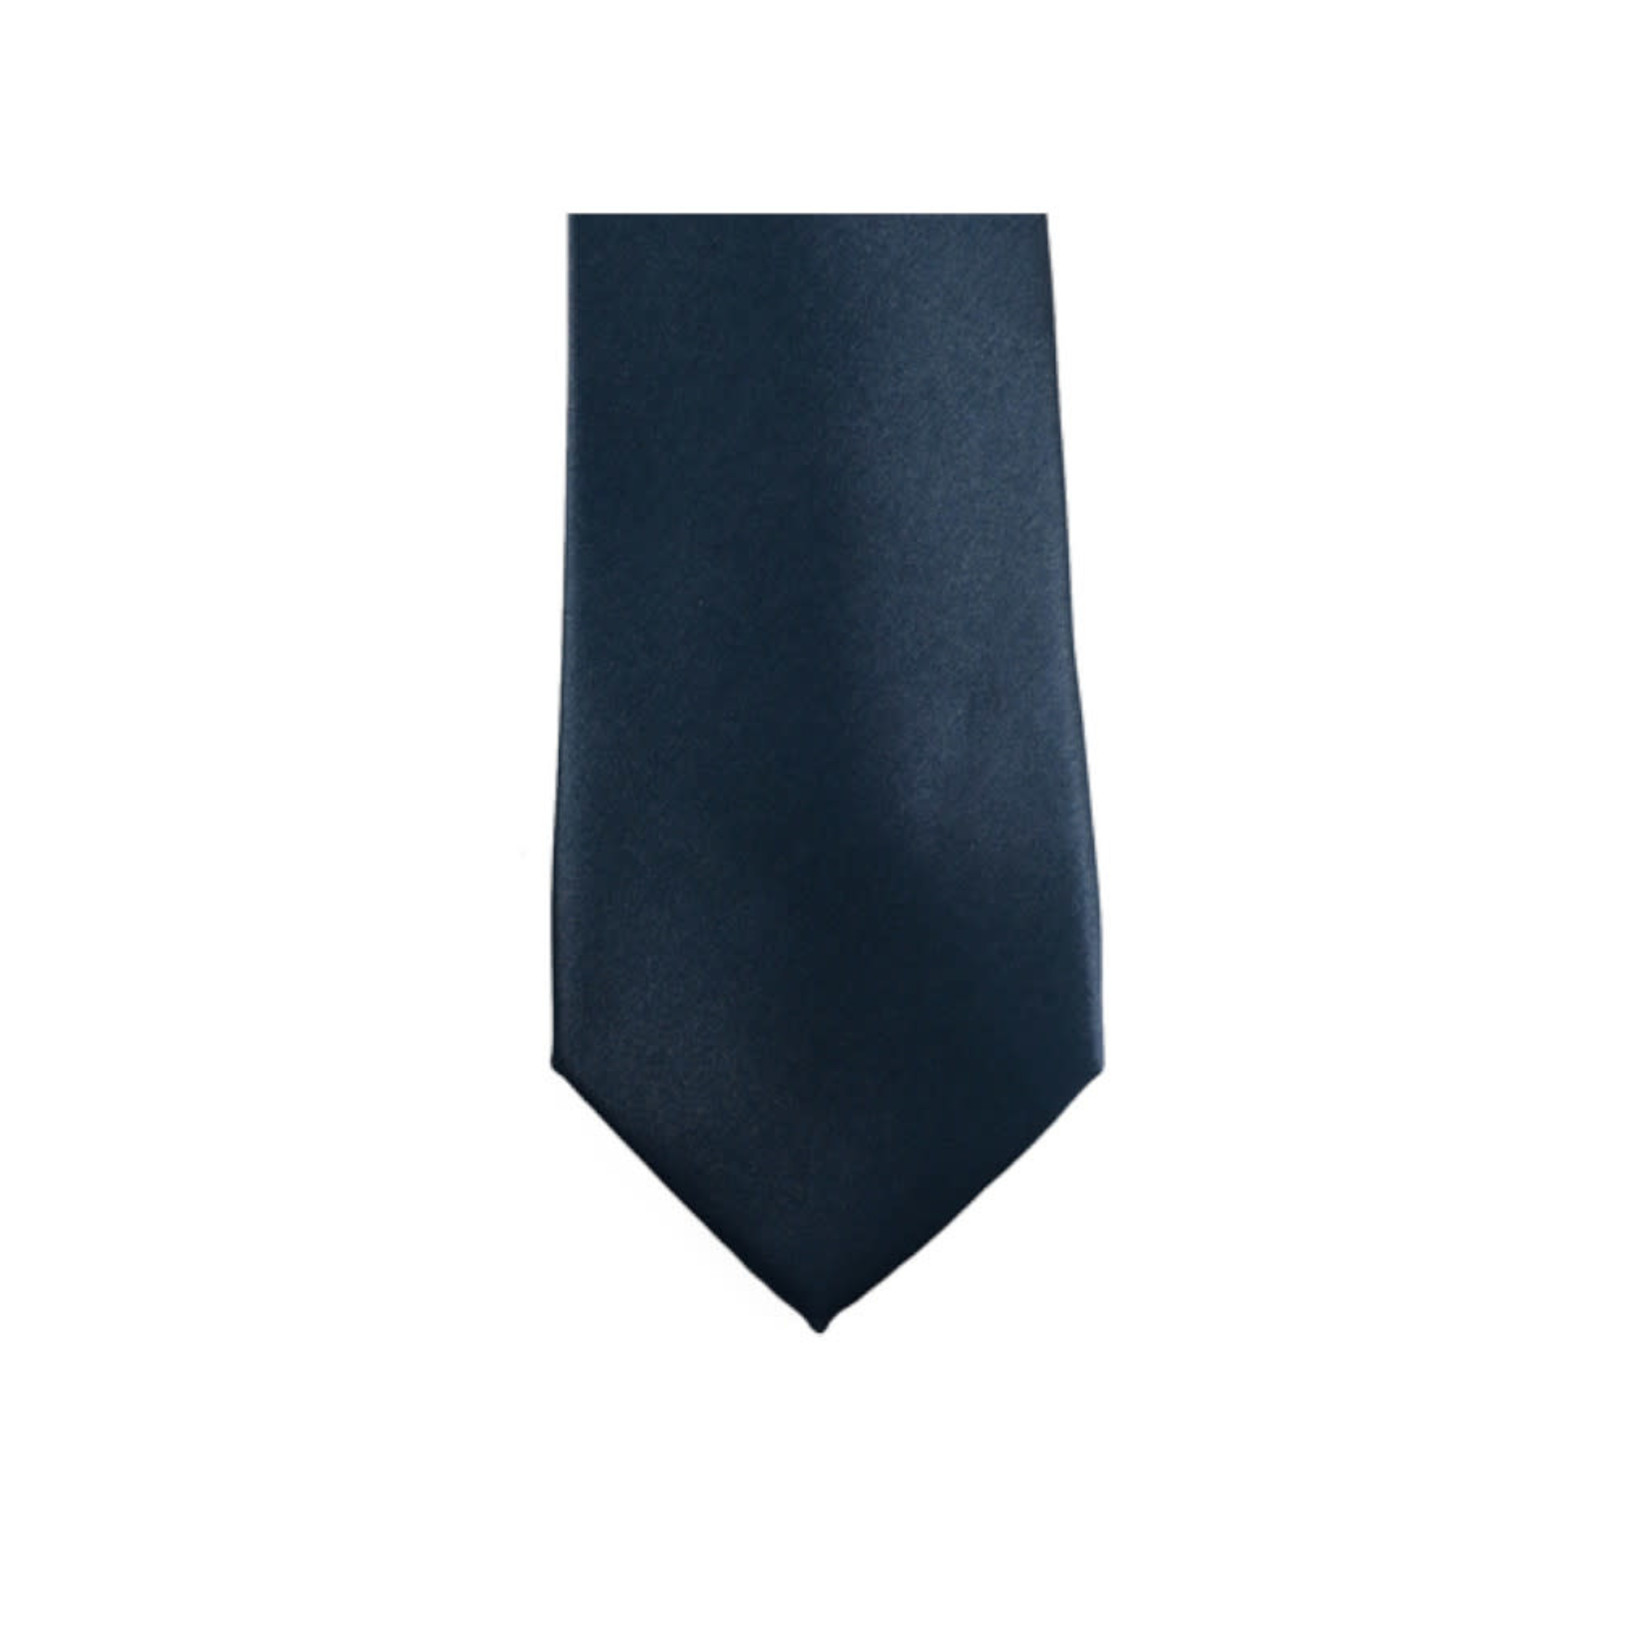 Knotz M100-29 Solid Charcoal Tie